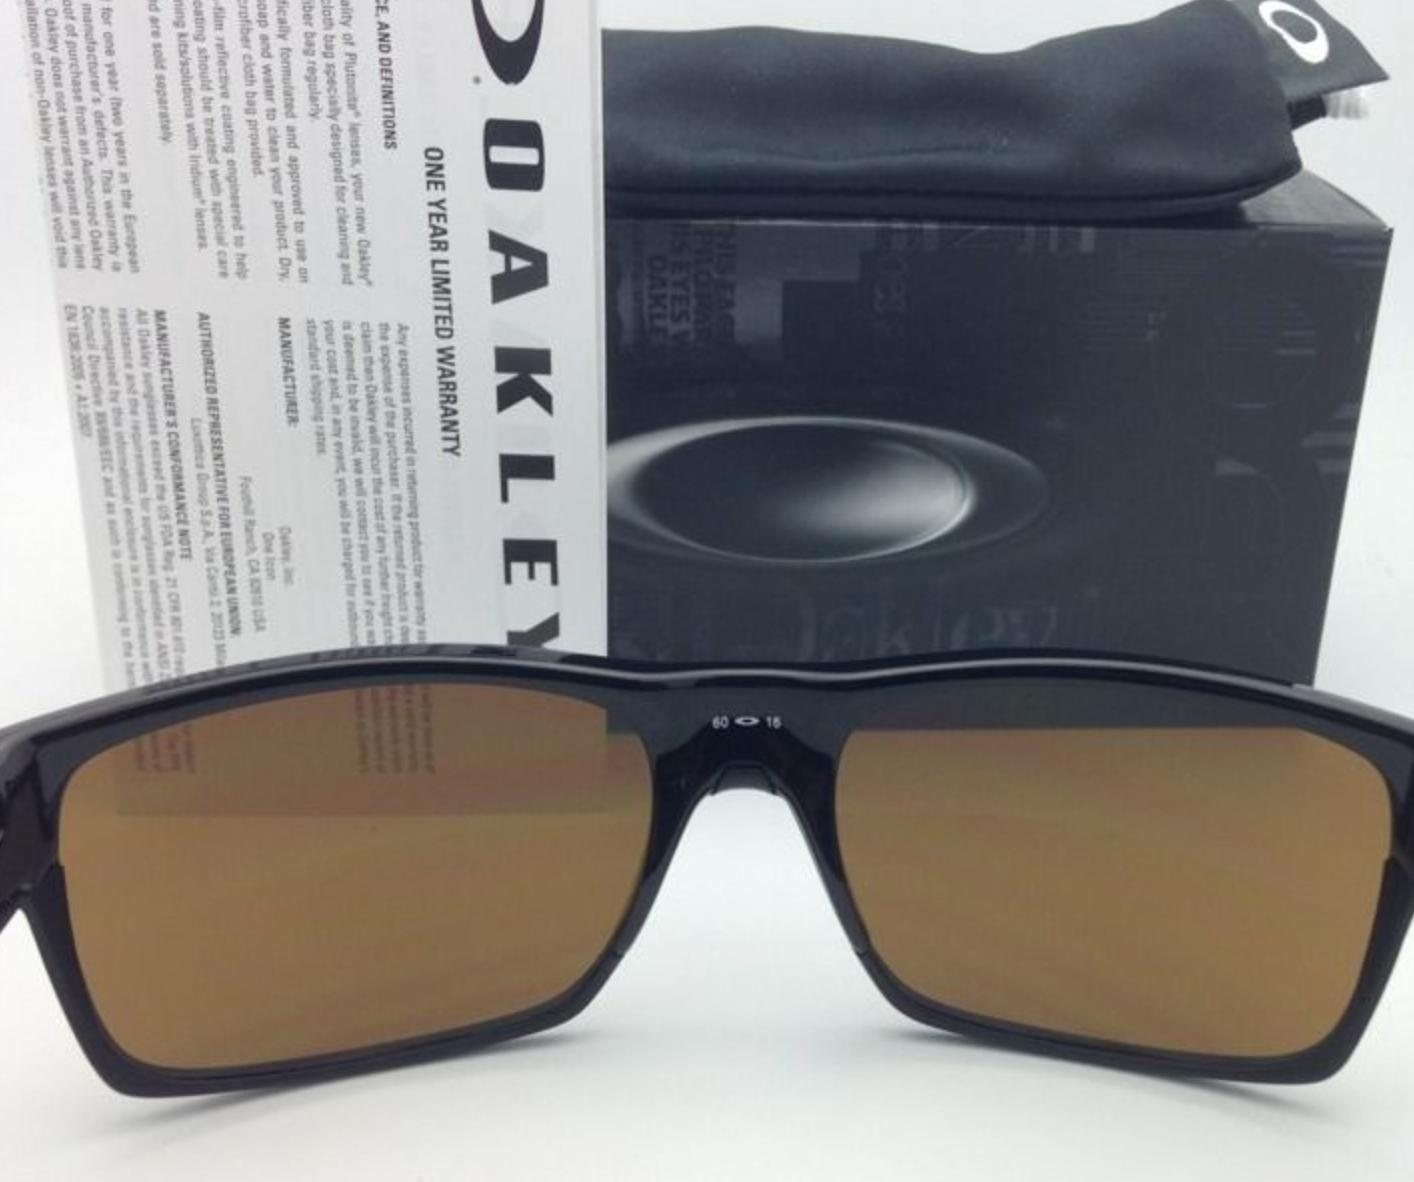 98b143d2e85f7 ... best oakley new oakley sunglasses twoface oo9189 03 60 16 black w dark  bronze. 123456789101112